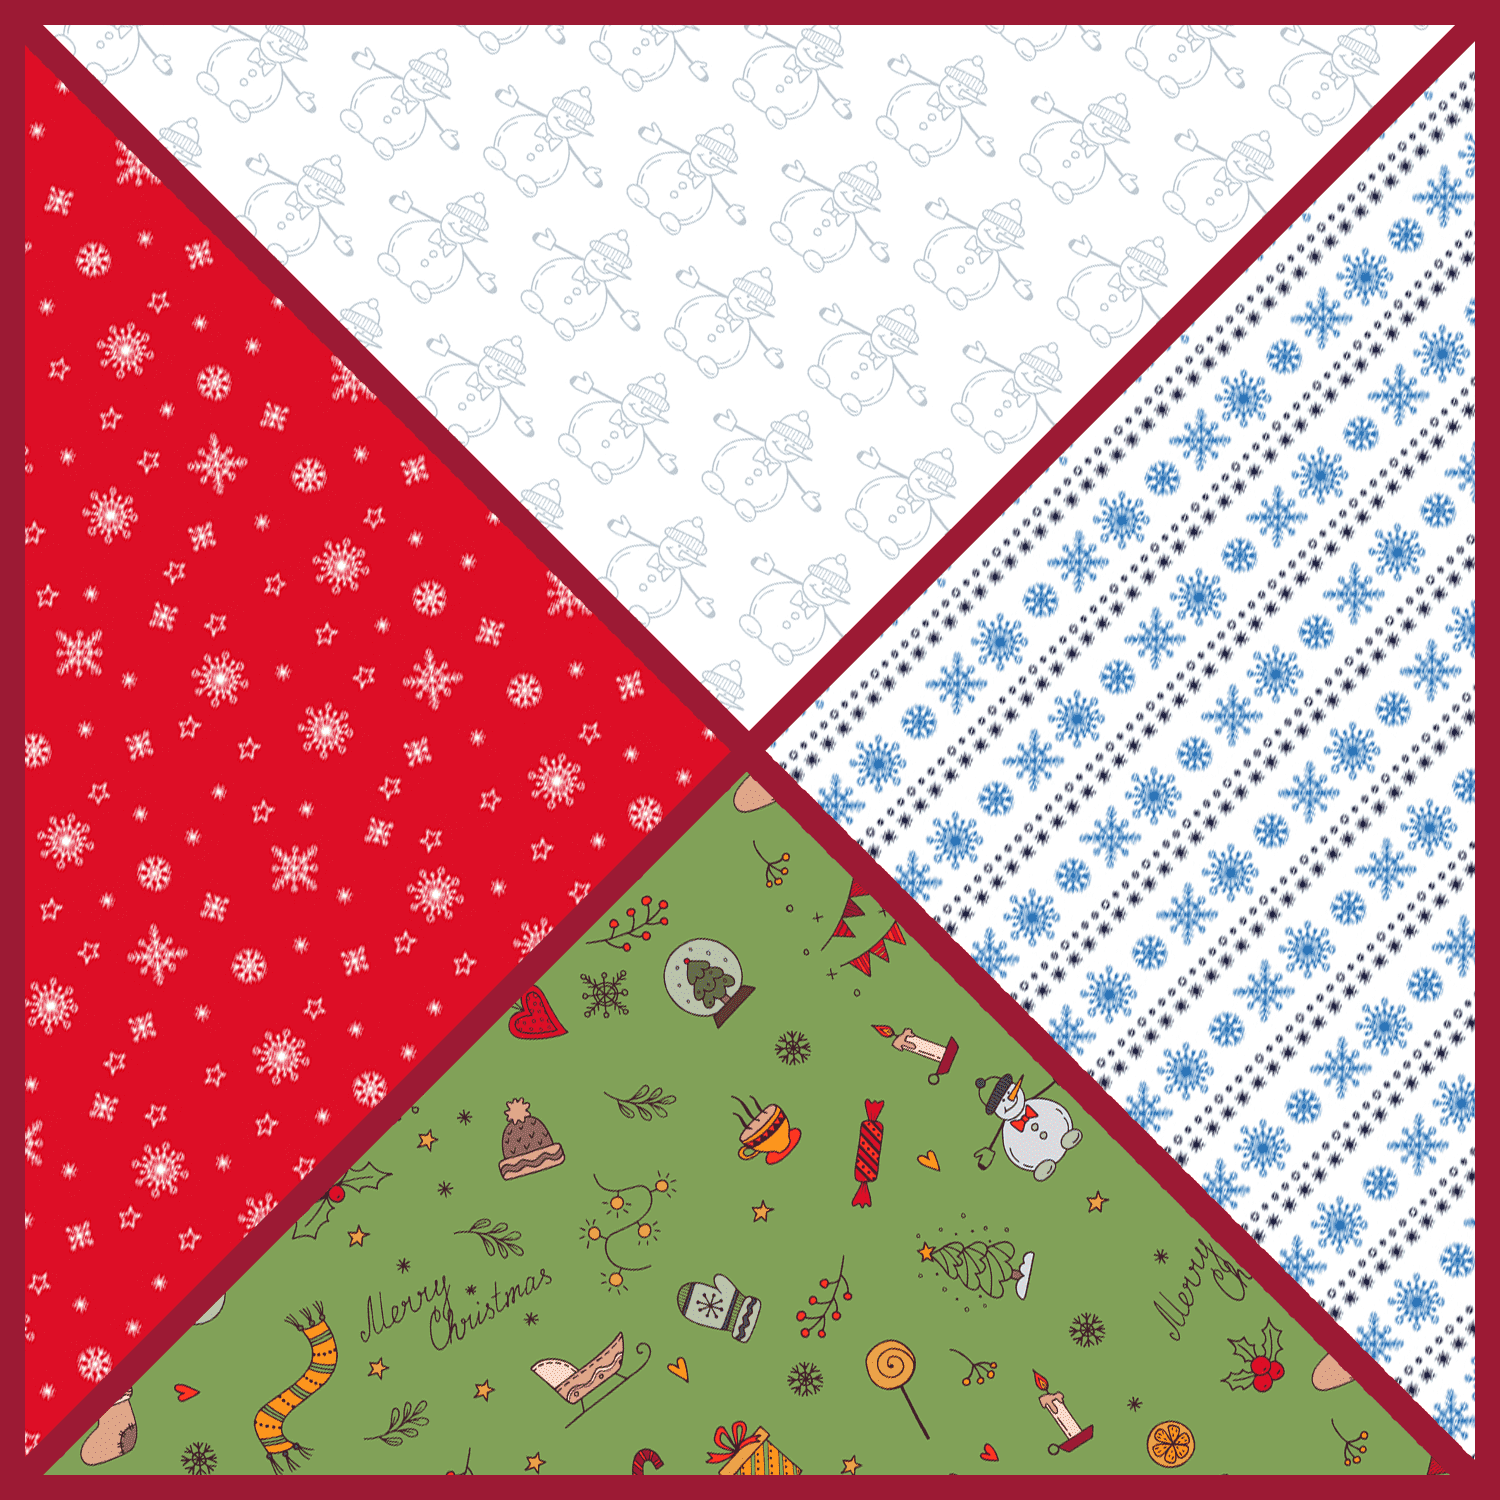 Hand Drawn Christmas Vector Patterns cover image.